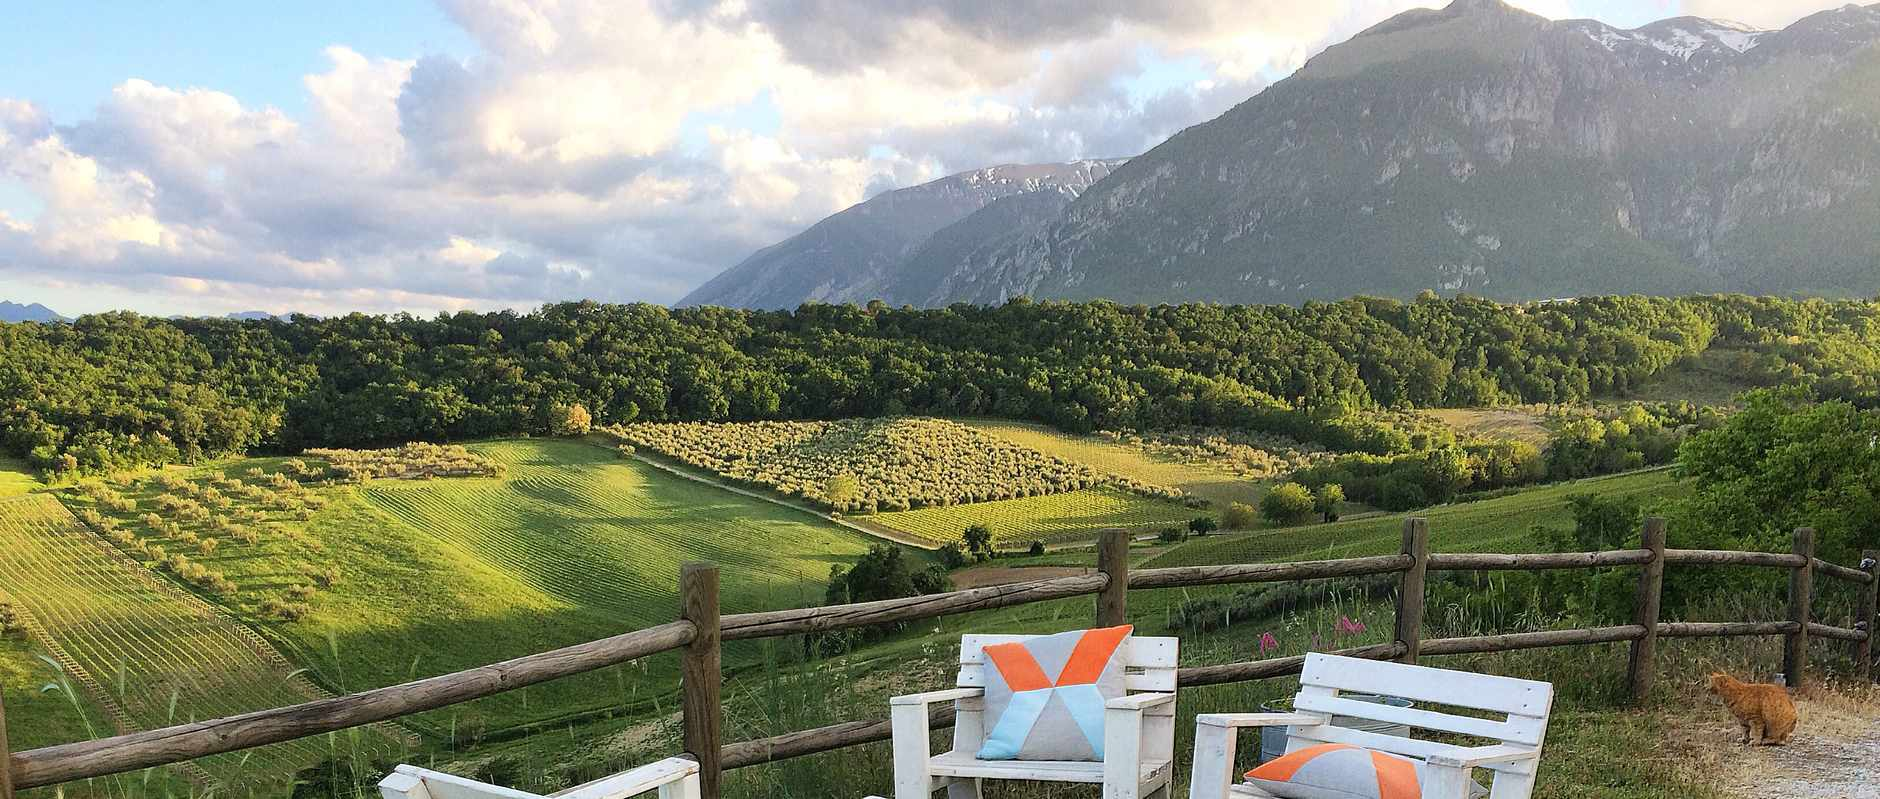 The rolling fields at Fireflies and Figs, Abruzzo